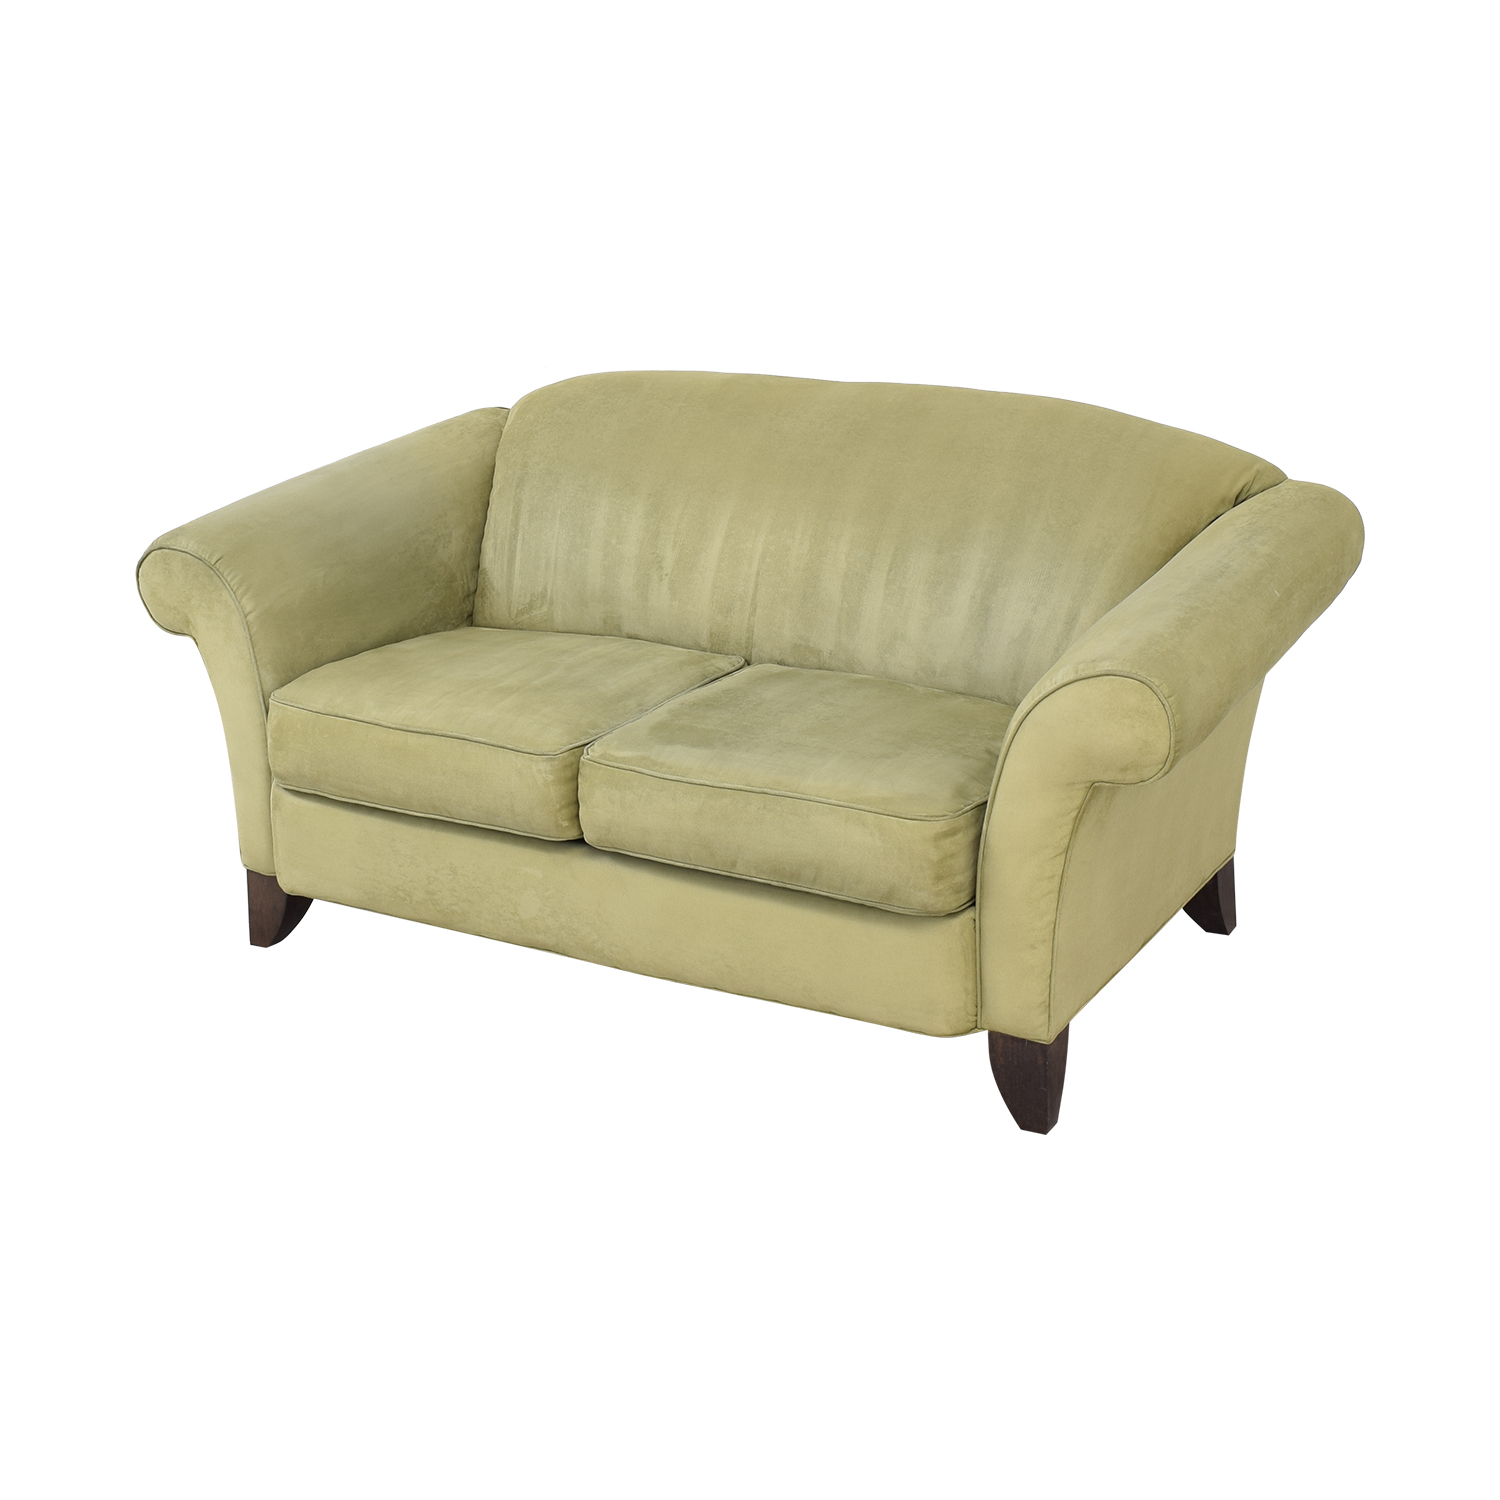 Rowe Furniture Rowe Furniture Roll Arm Loveseat nj